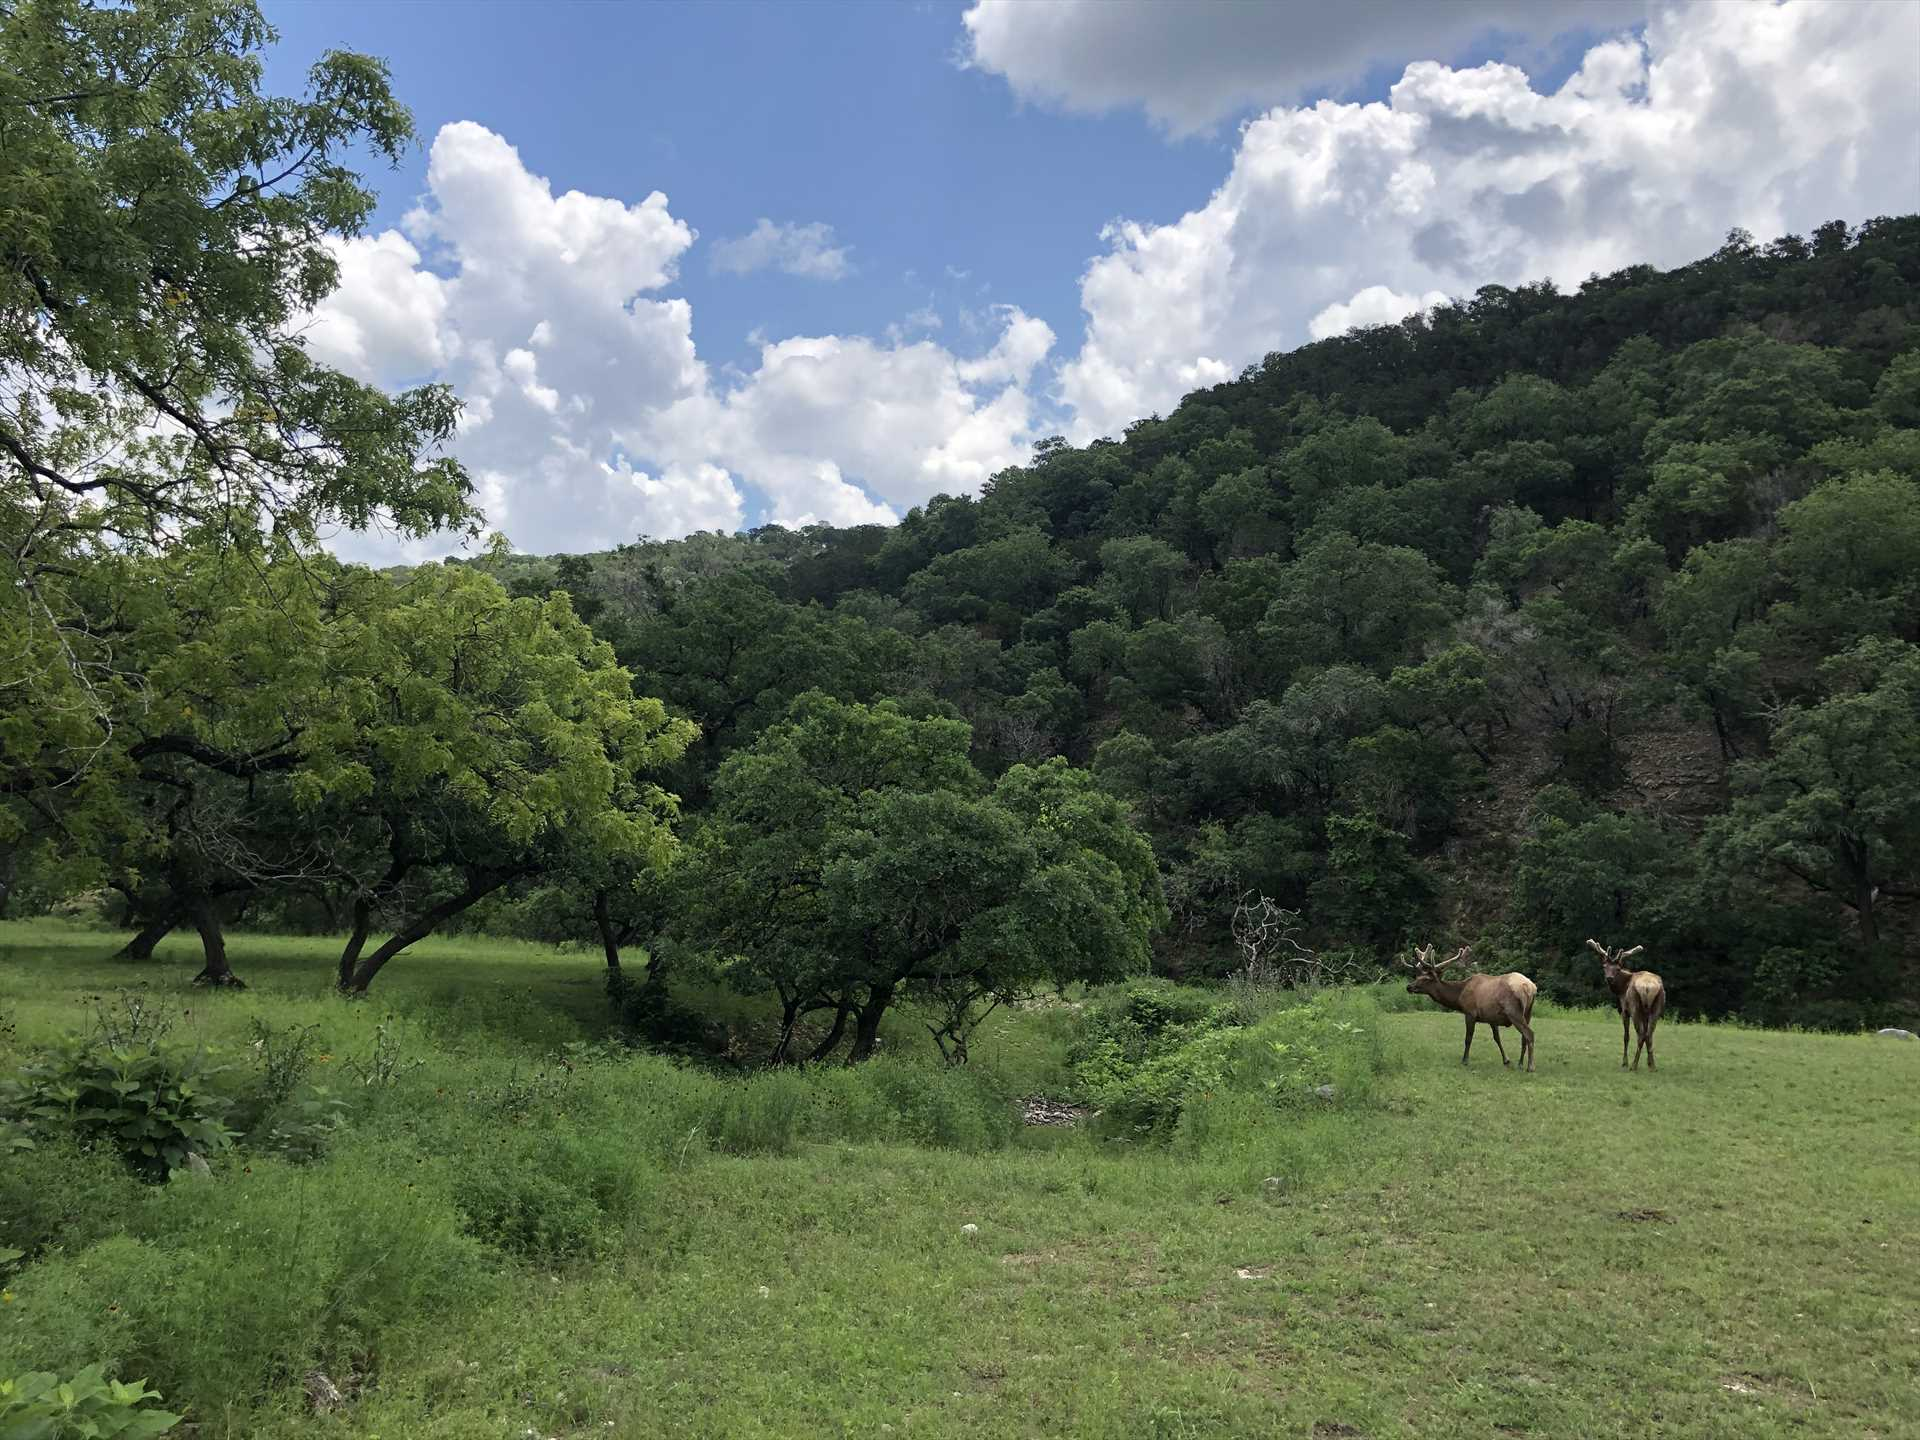 The local wildlife and stunning mountain views at the ranch set the stage for postcard-pretty sights everywhere you look!